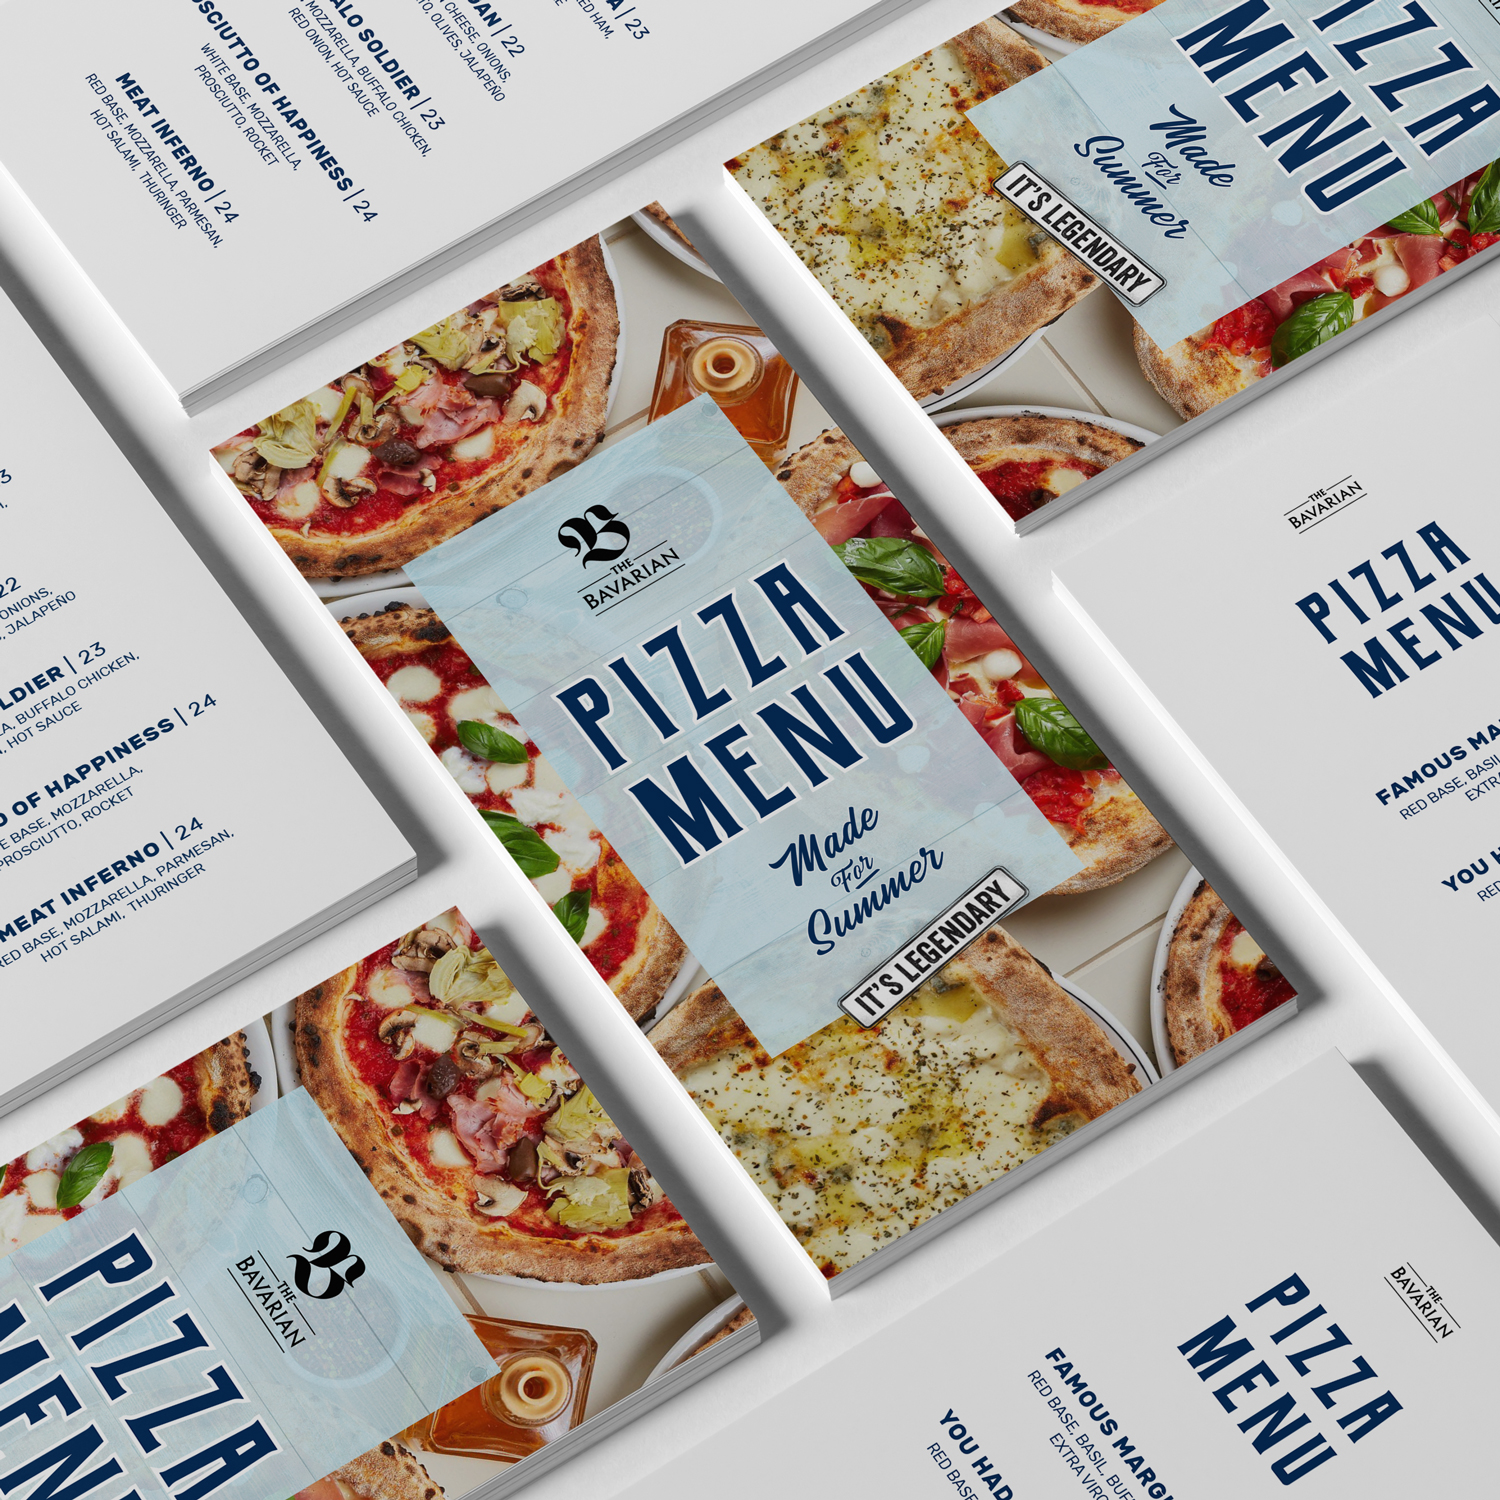 BAVARIAN-PIZZA-MENU-MOCKUP-SQUARE